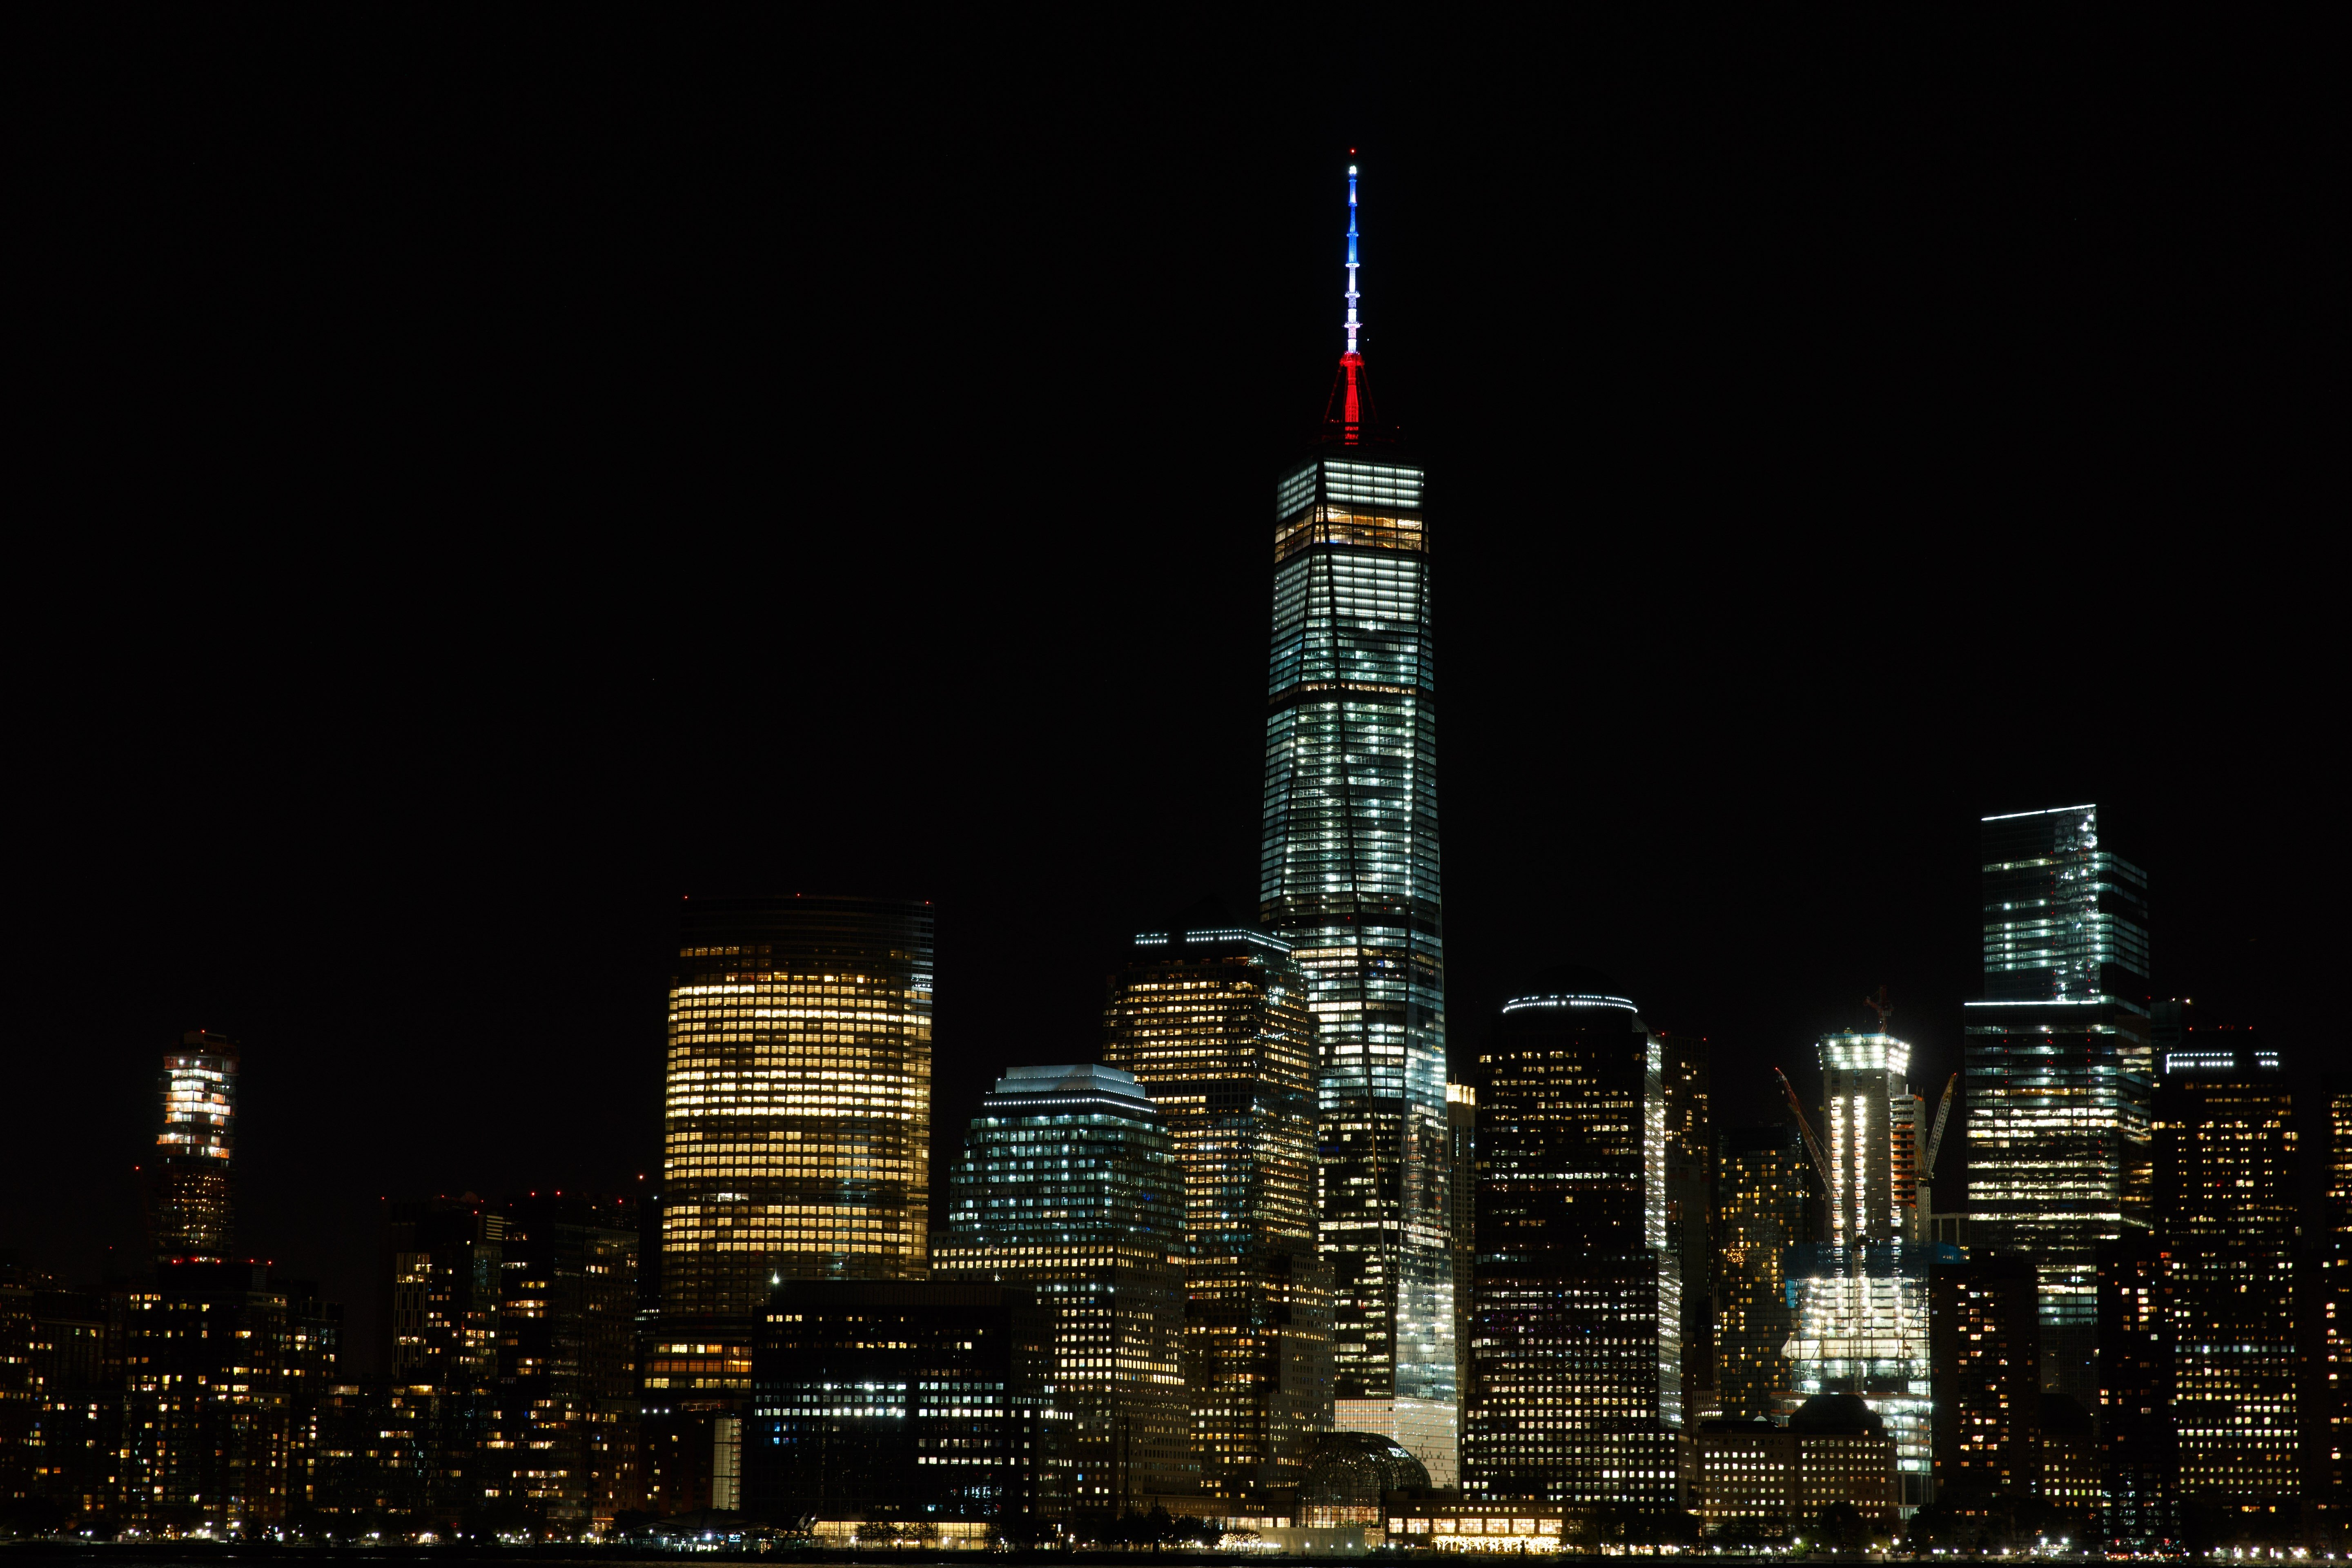 Colors that resemble the French national flag are seen on top of the tower of One World Trade Center in New York City onNov. 13, 2015.